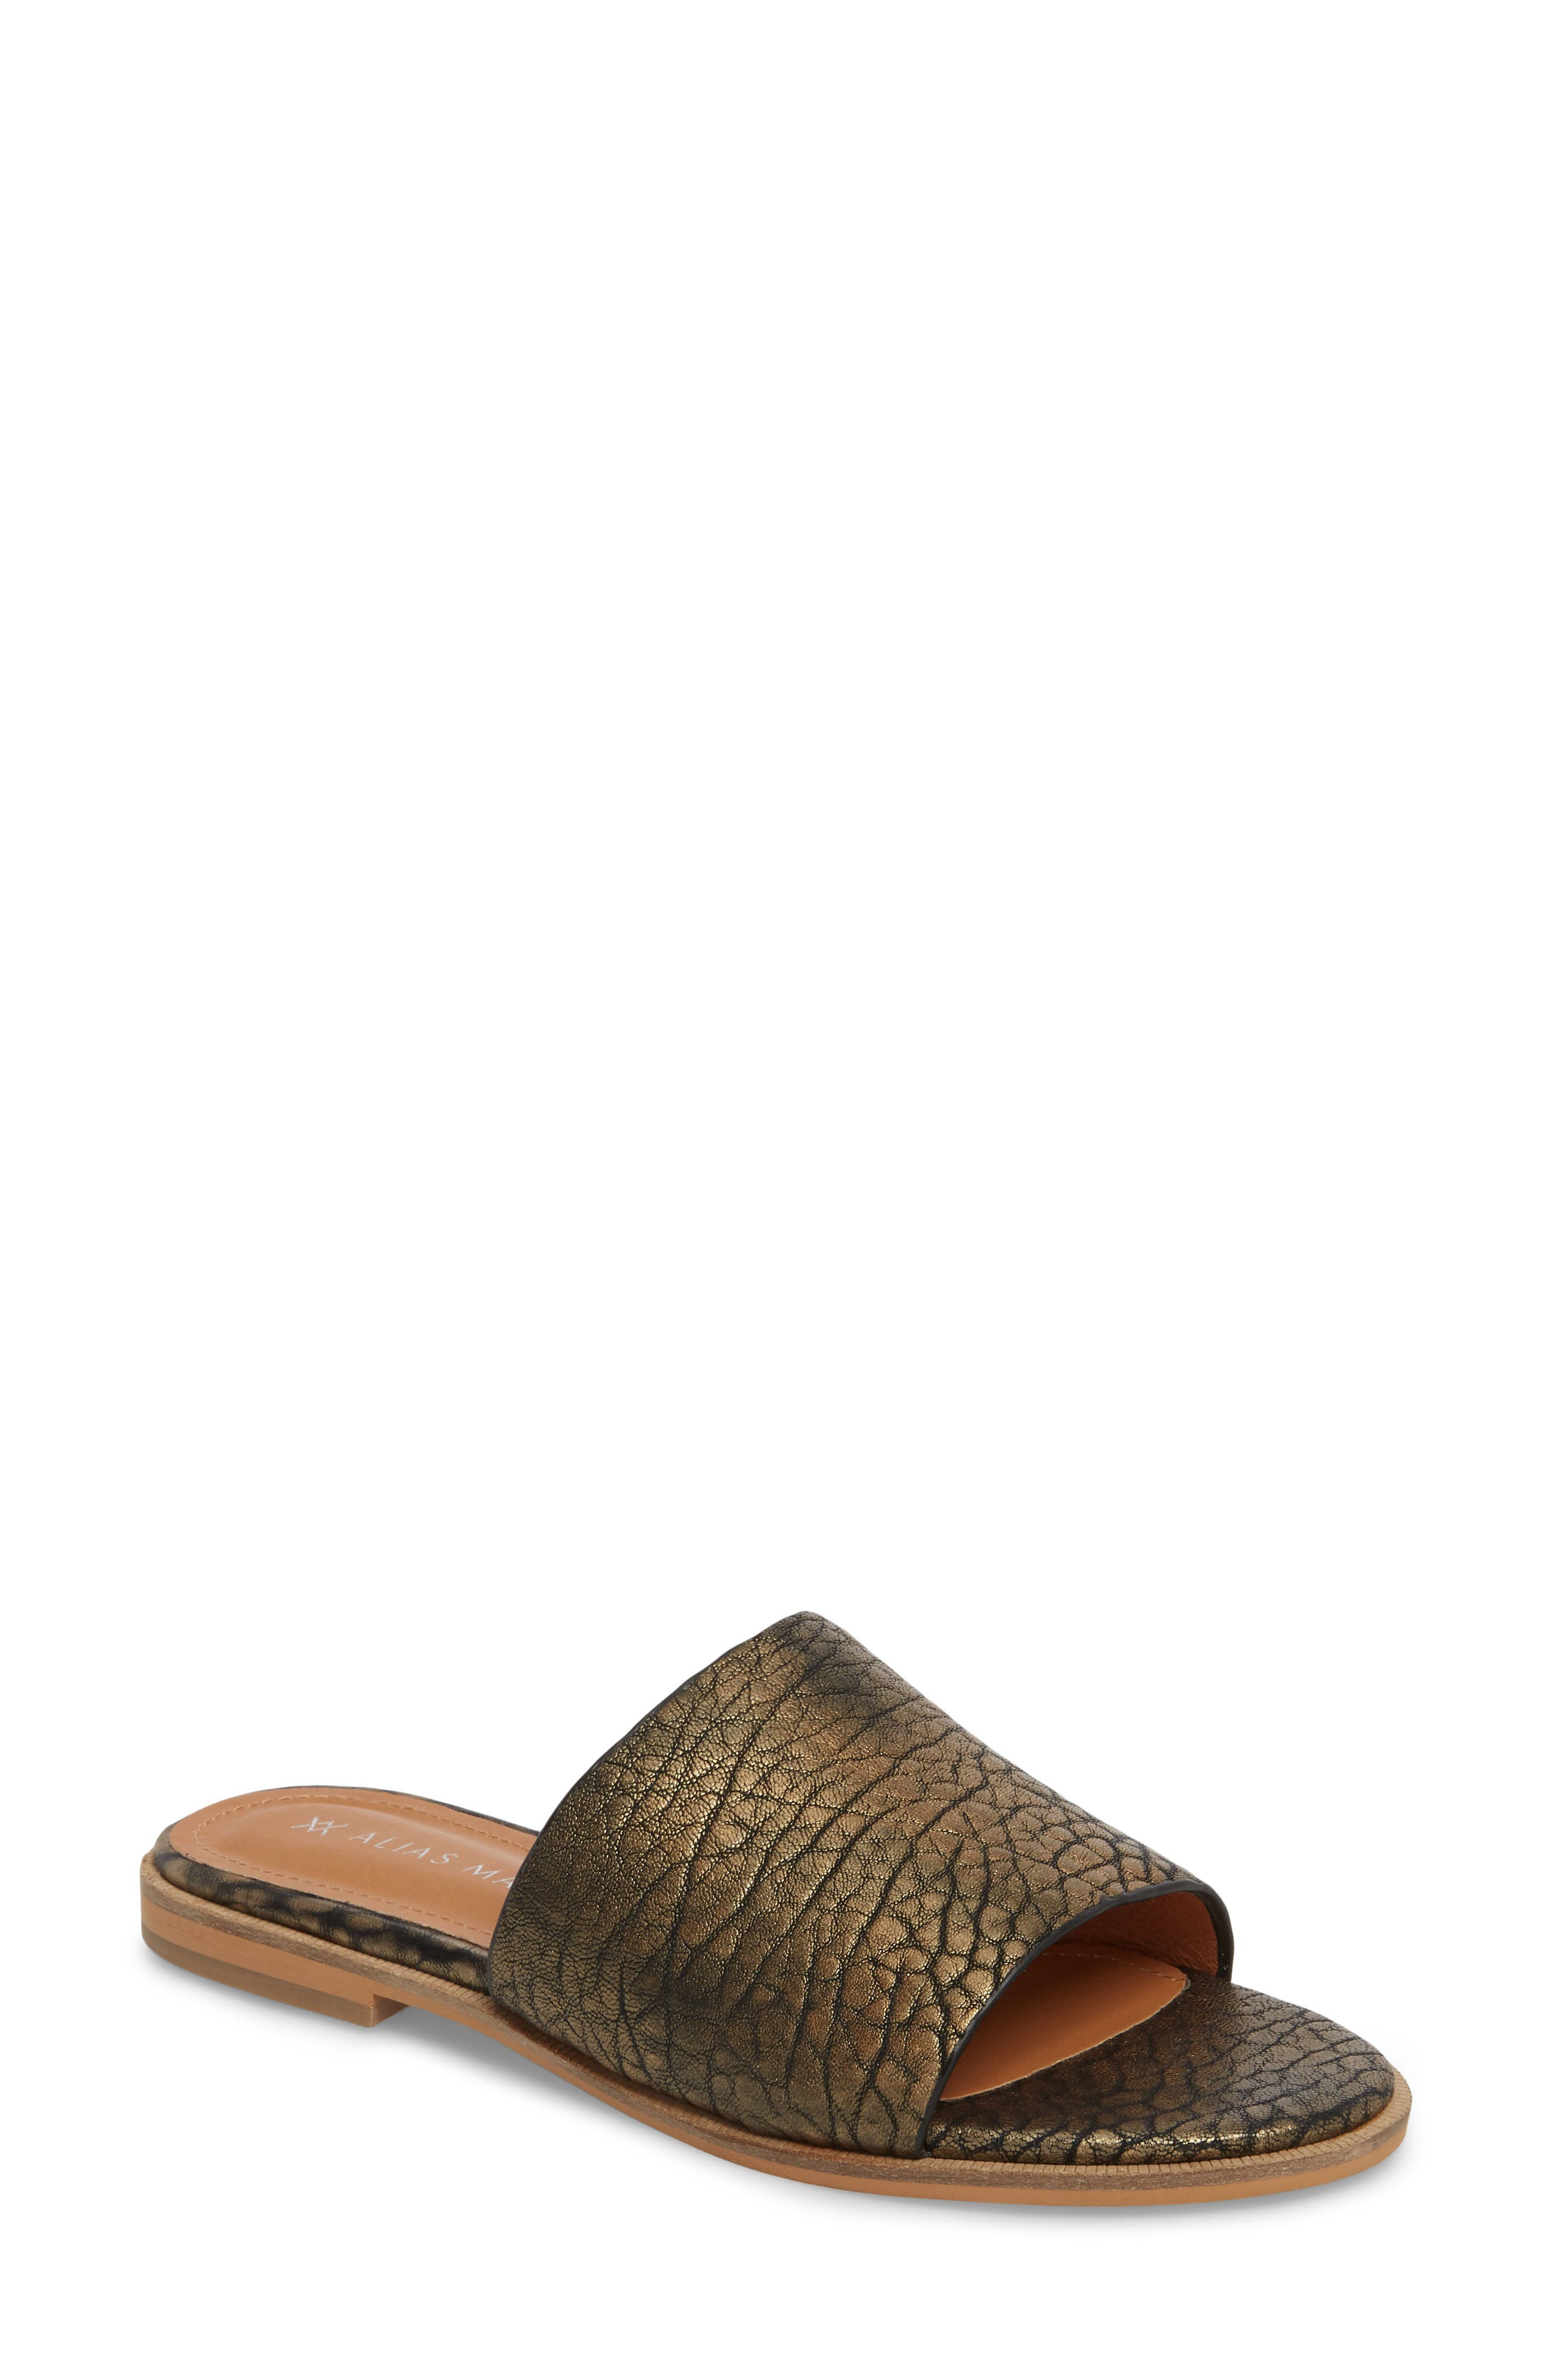 Therapy Slide Sandal,                             Main thumbnail 1, color,                             Gold Leather